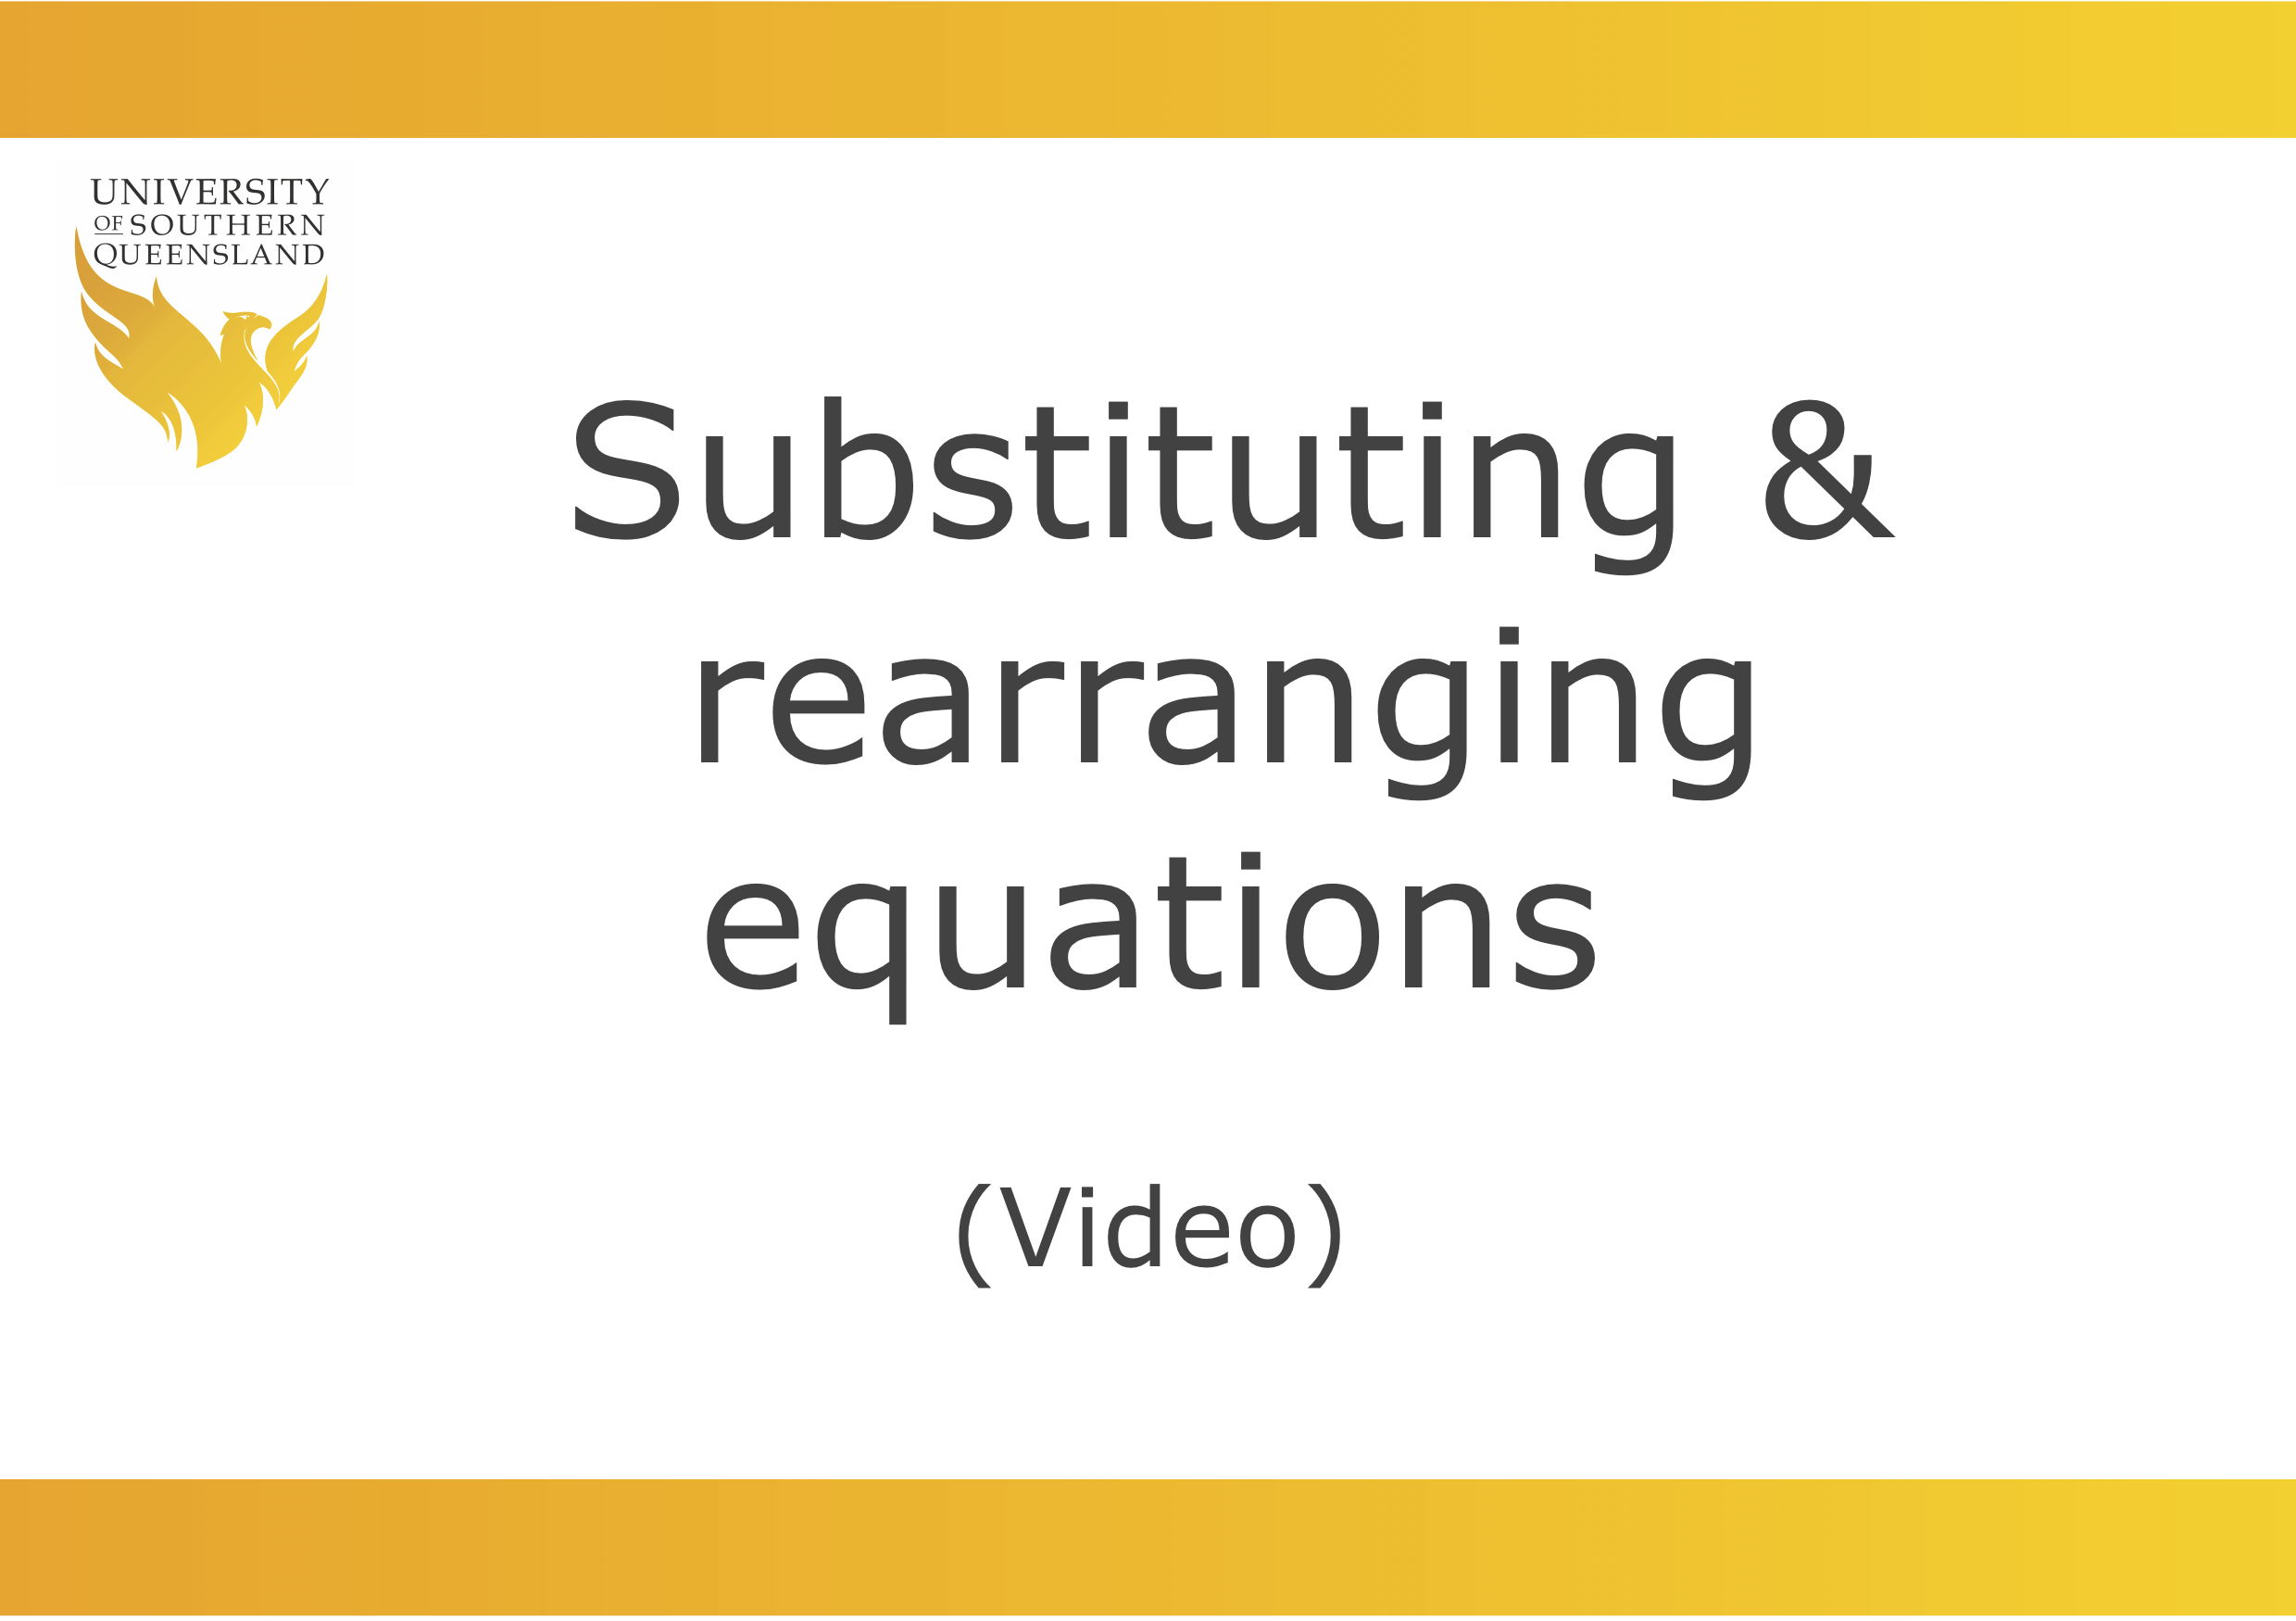 Image for the substituting and rearranging equations video.